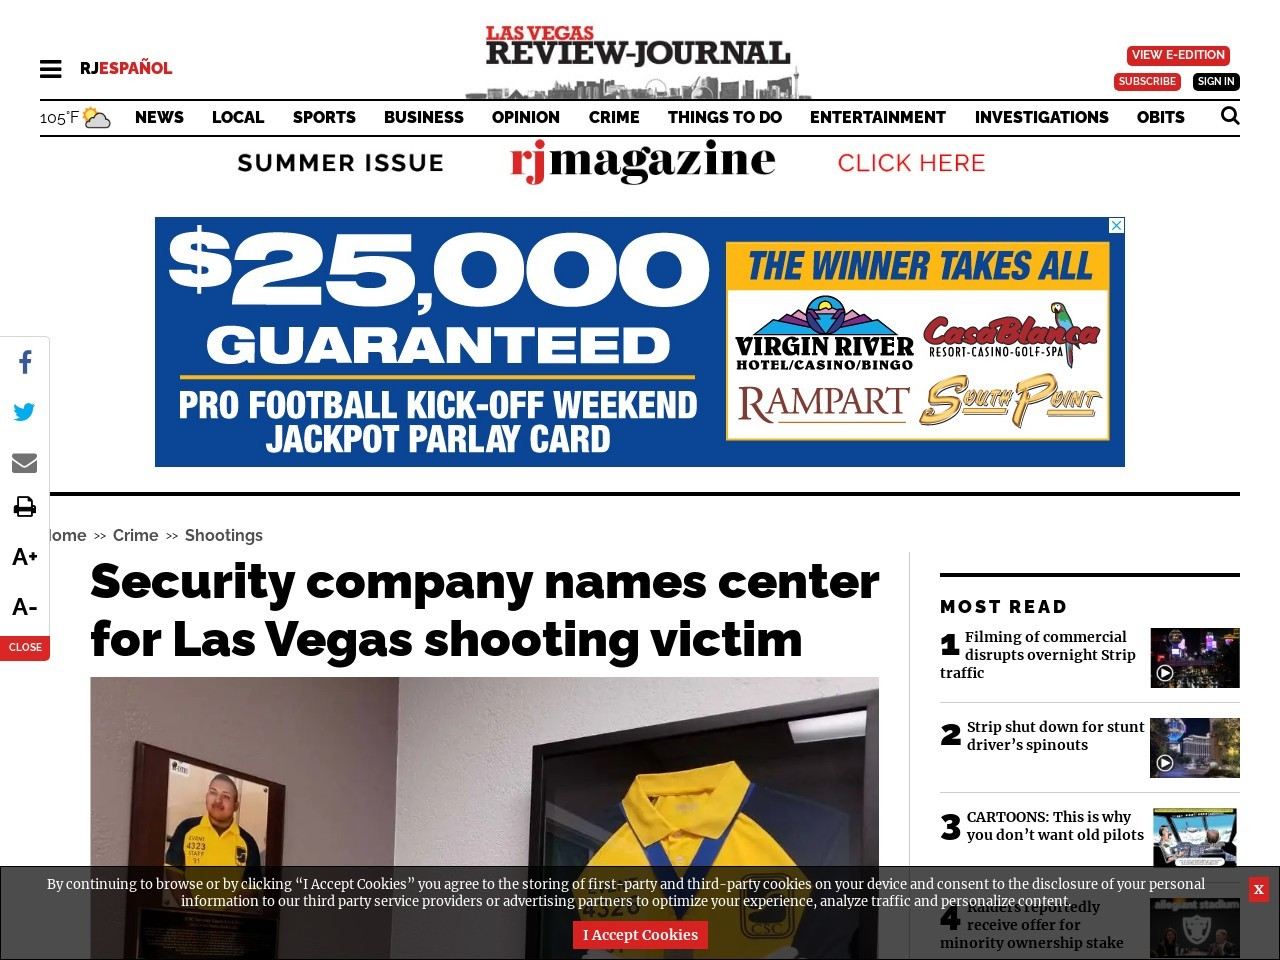 Security company names center for Las Vegas shooting victim